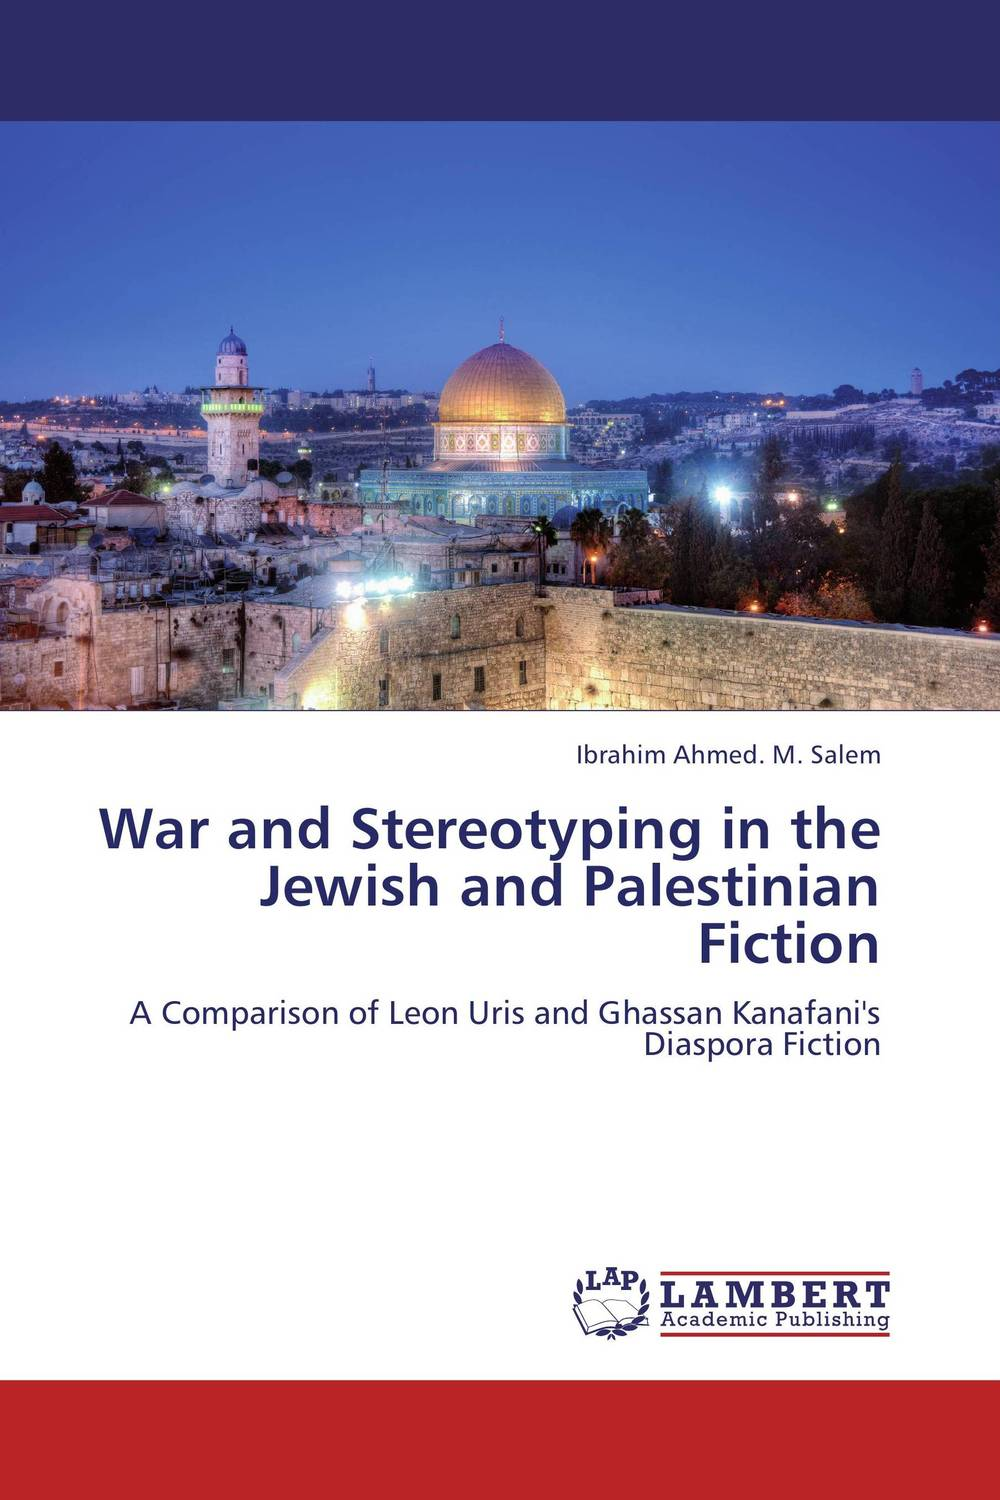 War and Stereotyping in the Jewish and Palestinian Fiction faulks on fiction